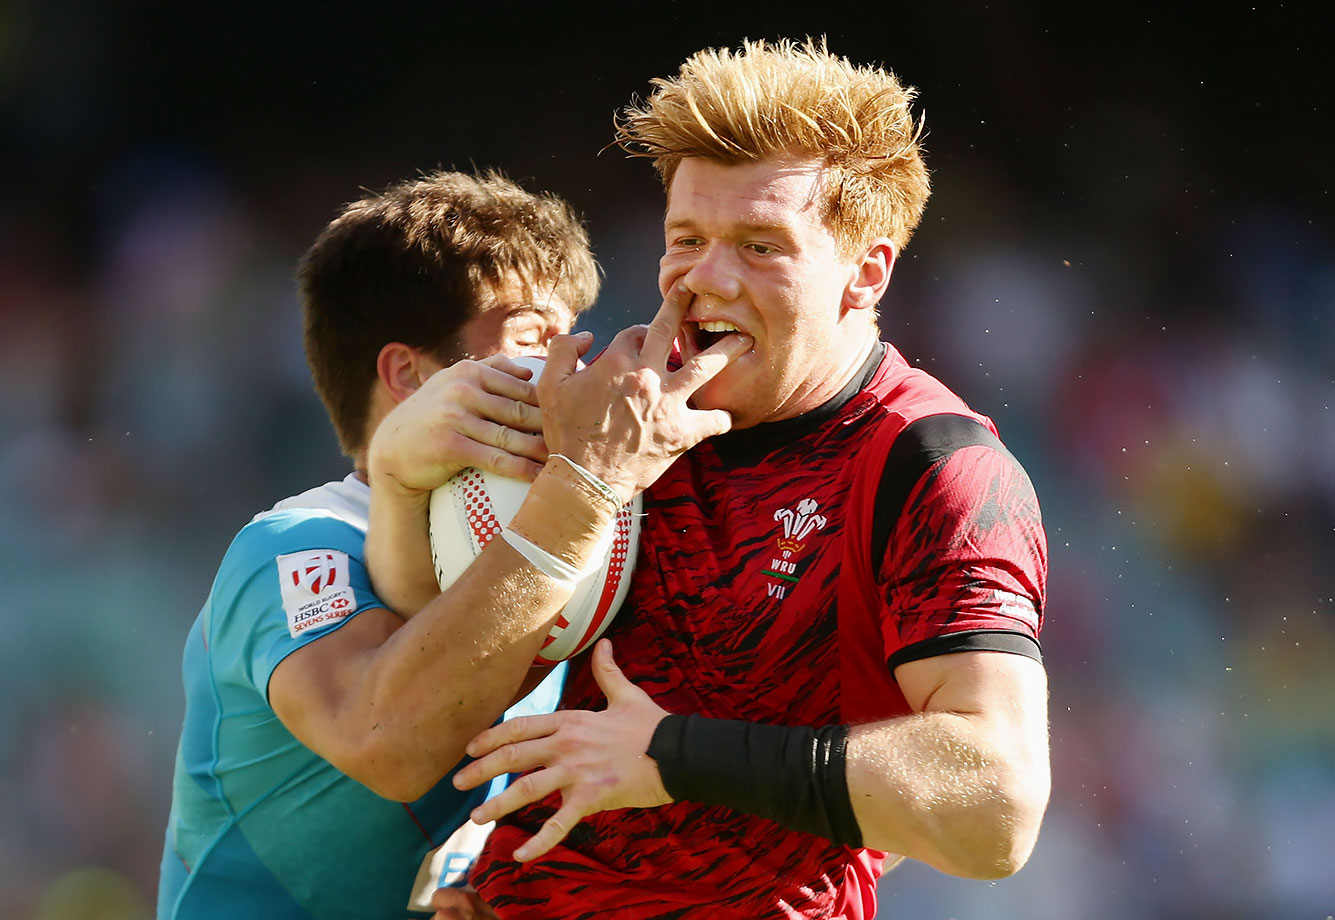 Sam Cross is tackled by German Davydov during the 2016 Sydney Sevens Shield Final match between Wales and Russia at Allianz Stadium in Sydney, Australia.